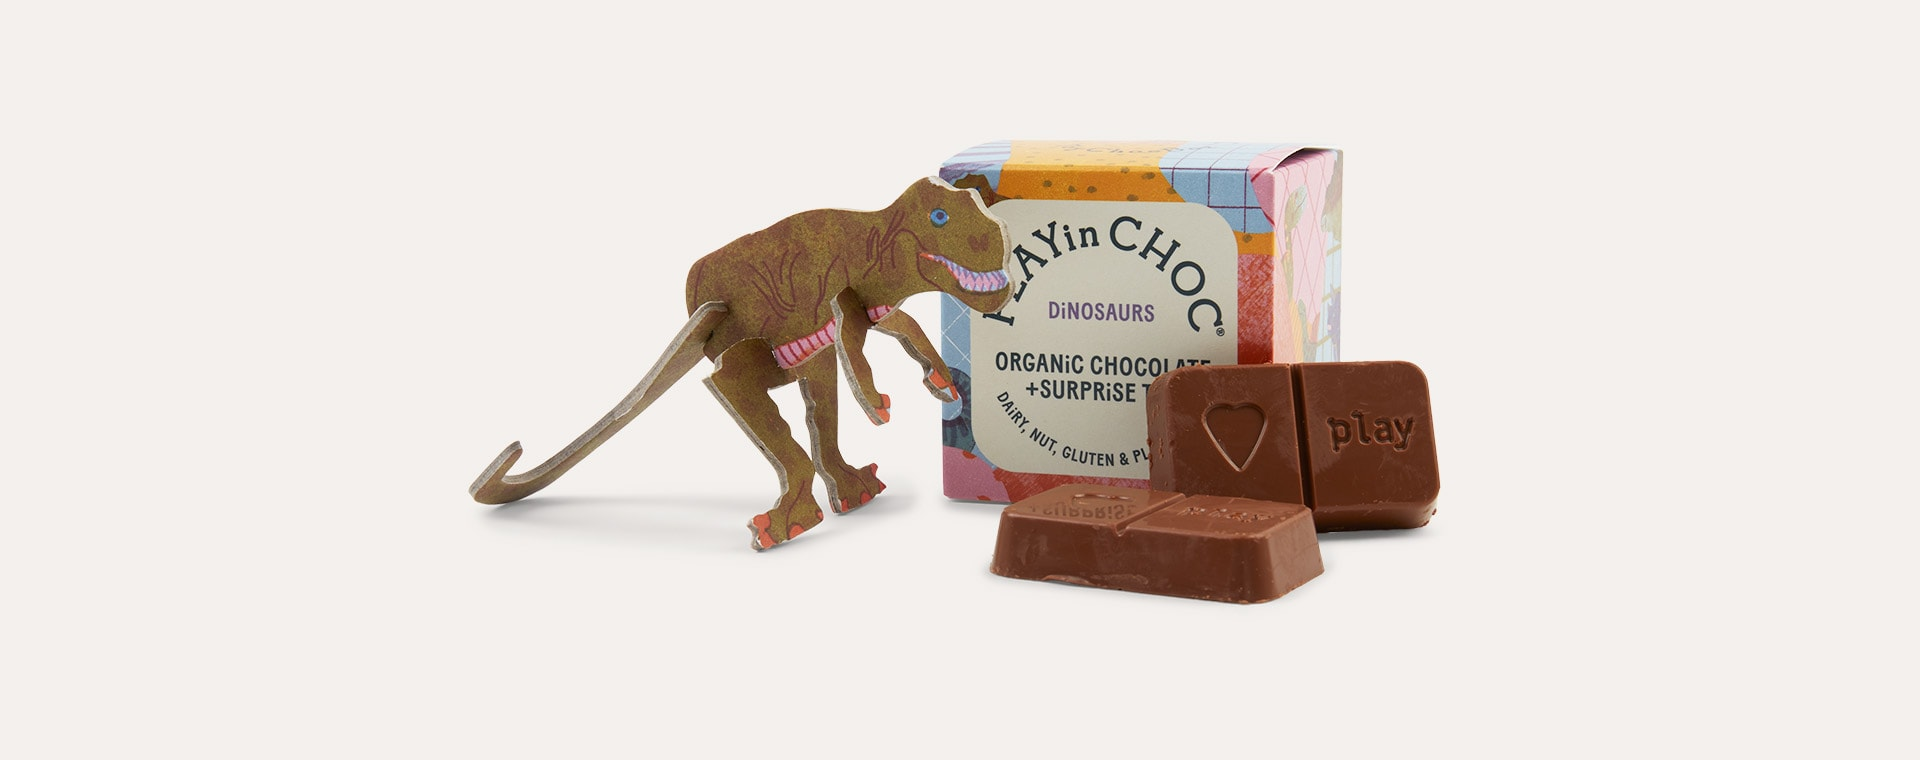 Dinosaurs Play In Choc Toychoc Box